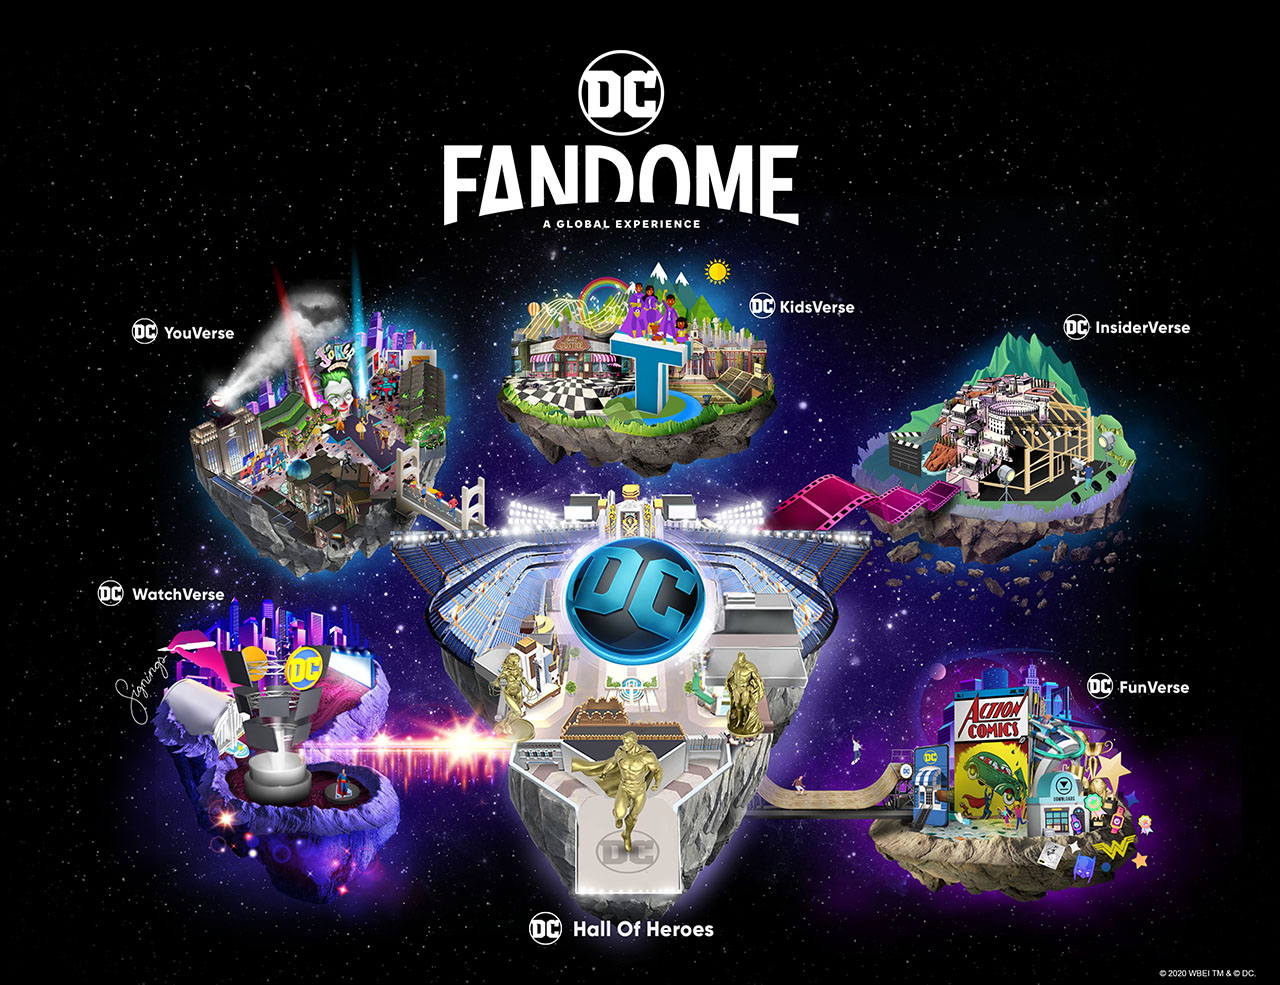 dc fandome map